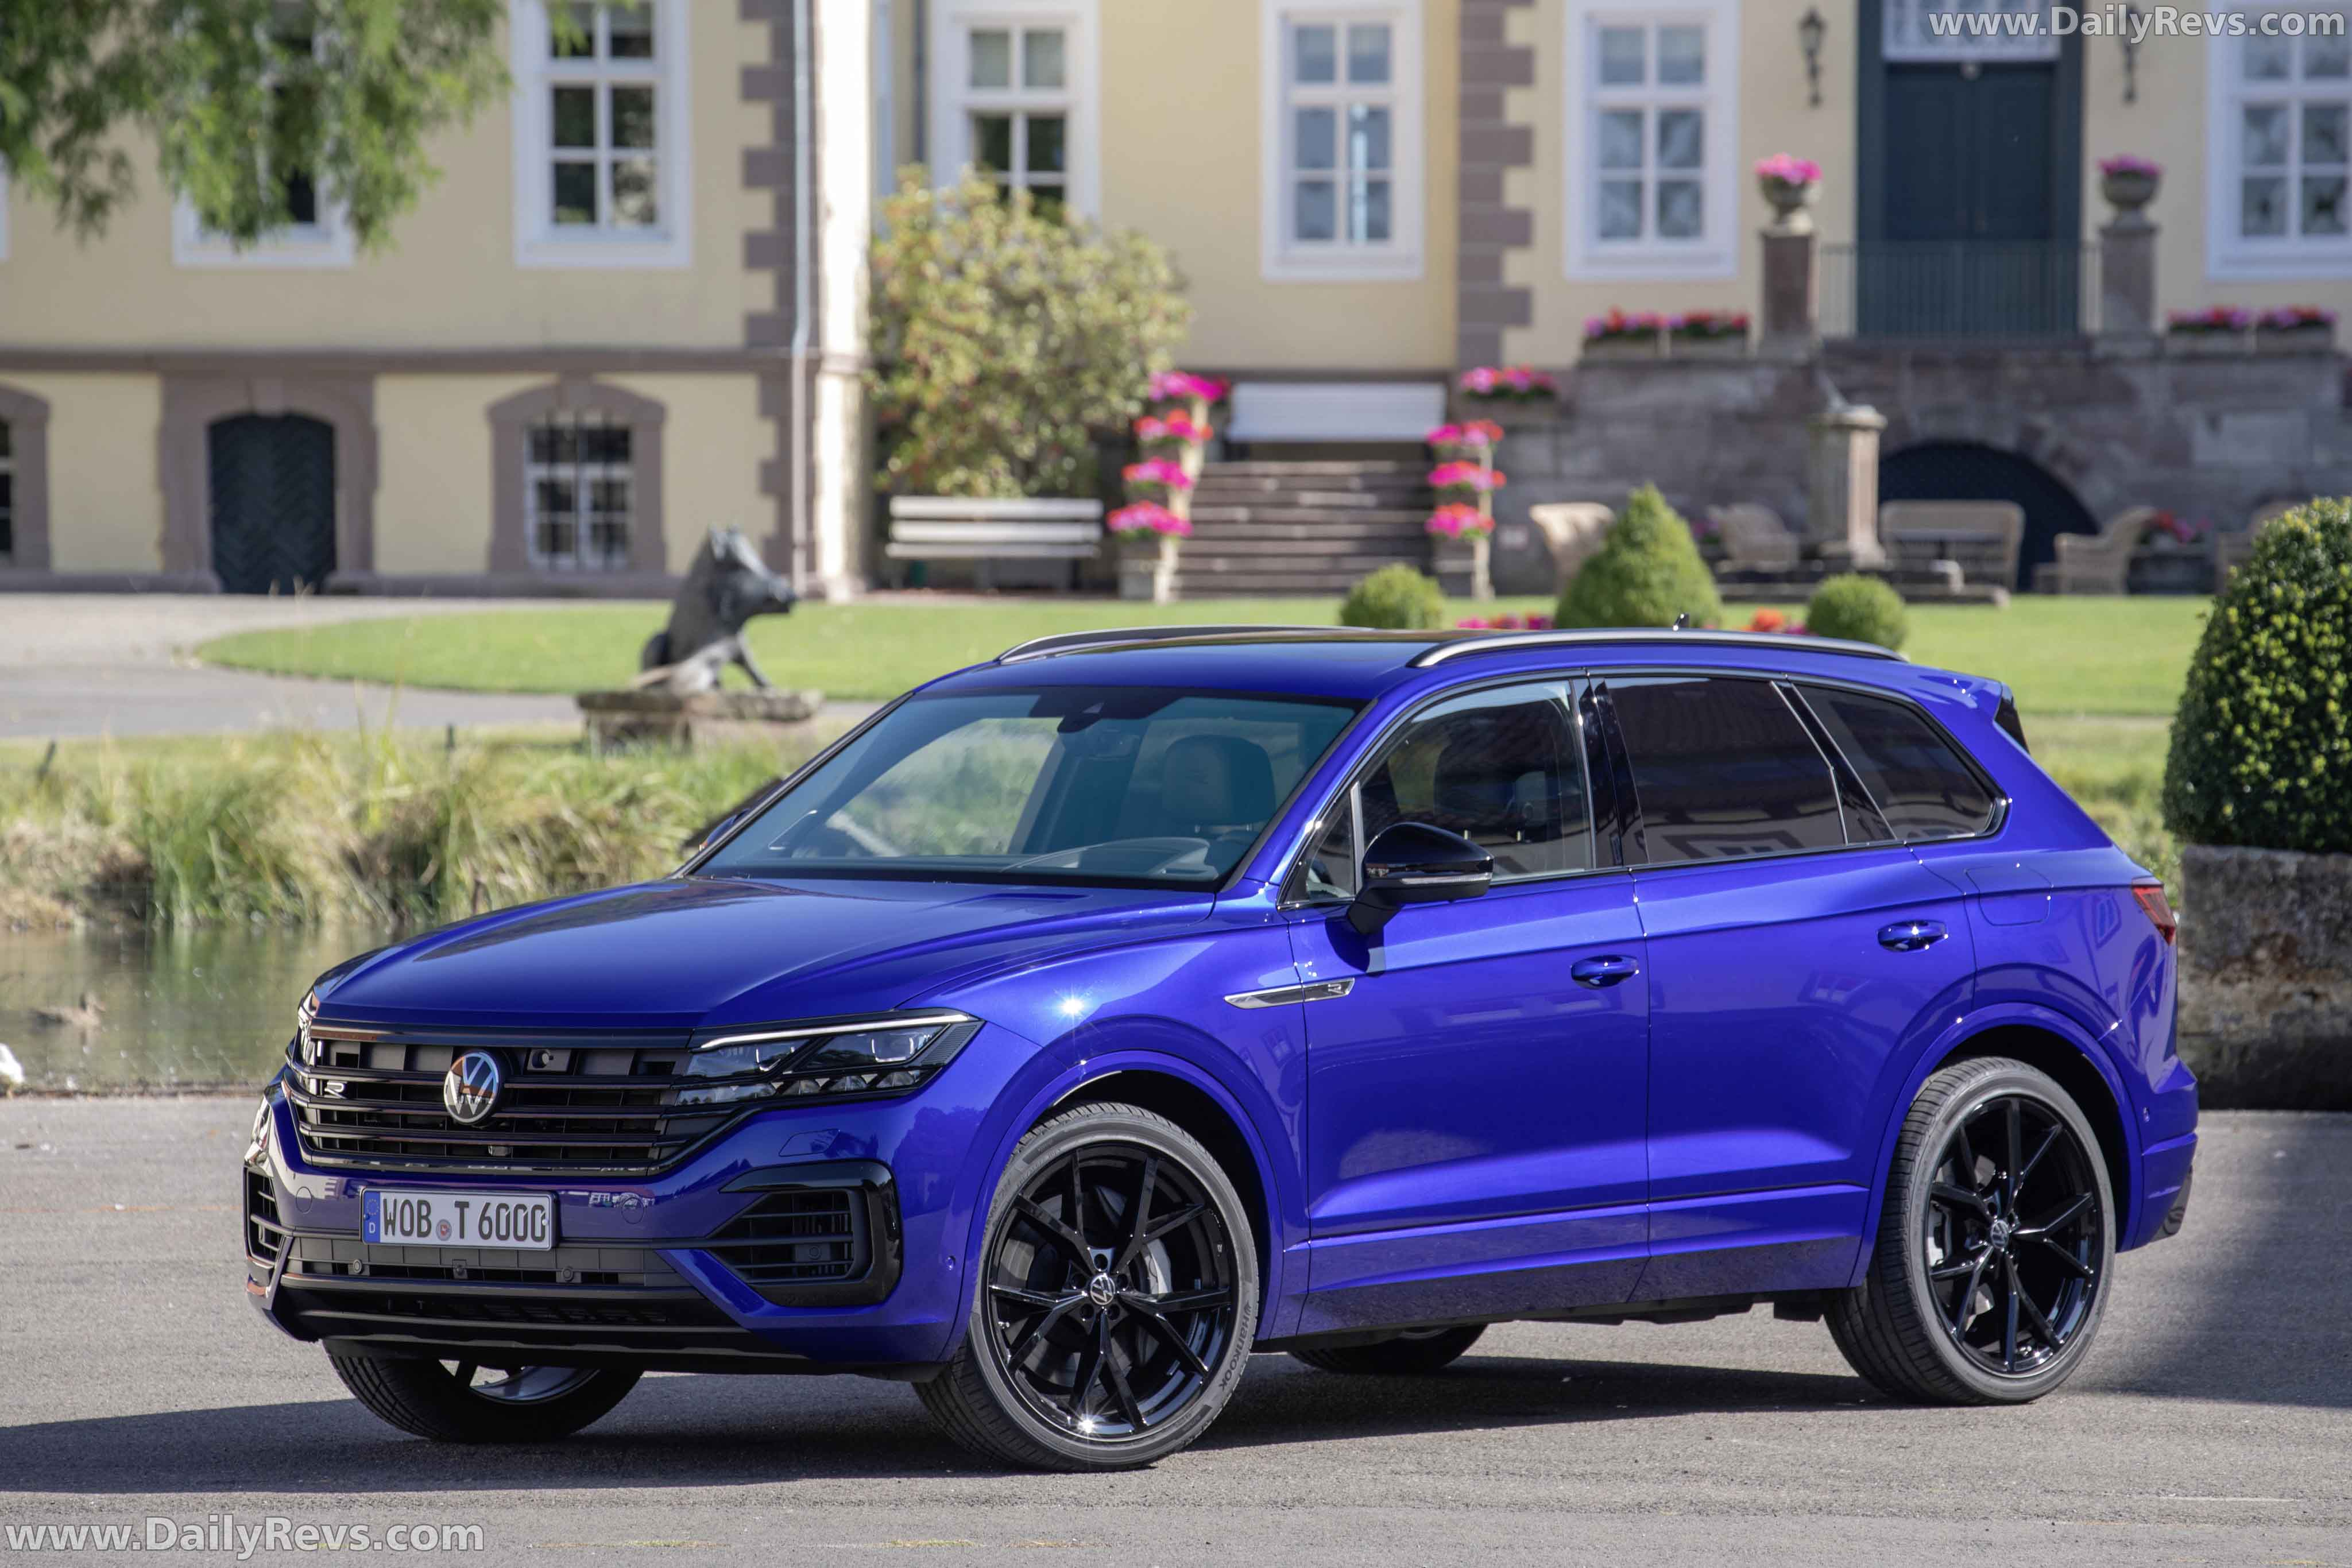 2020 Volkswagen Touareg R PHEV - HD Pictures, Videos ...